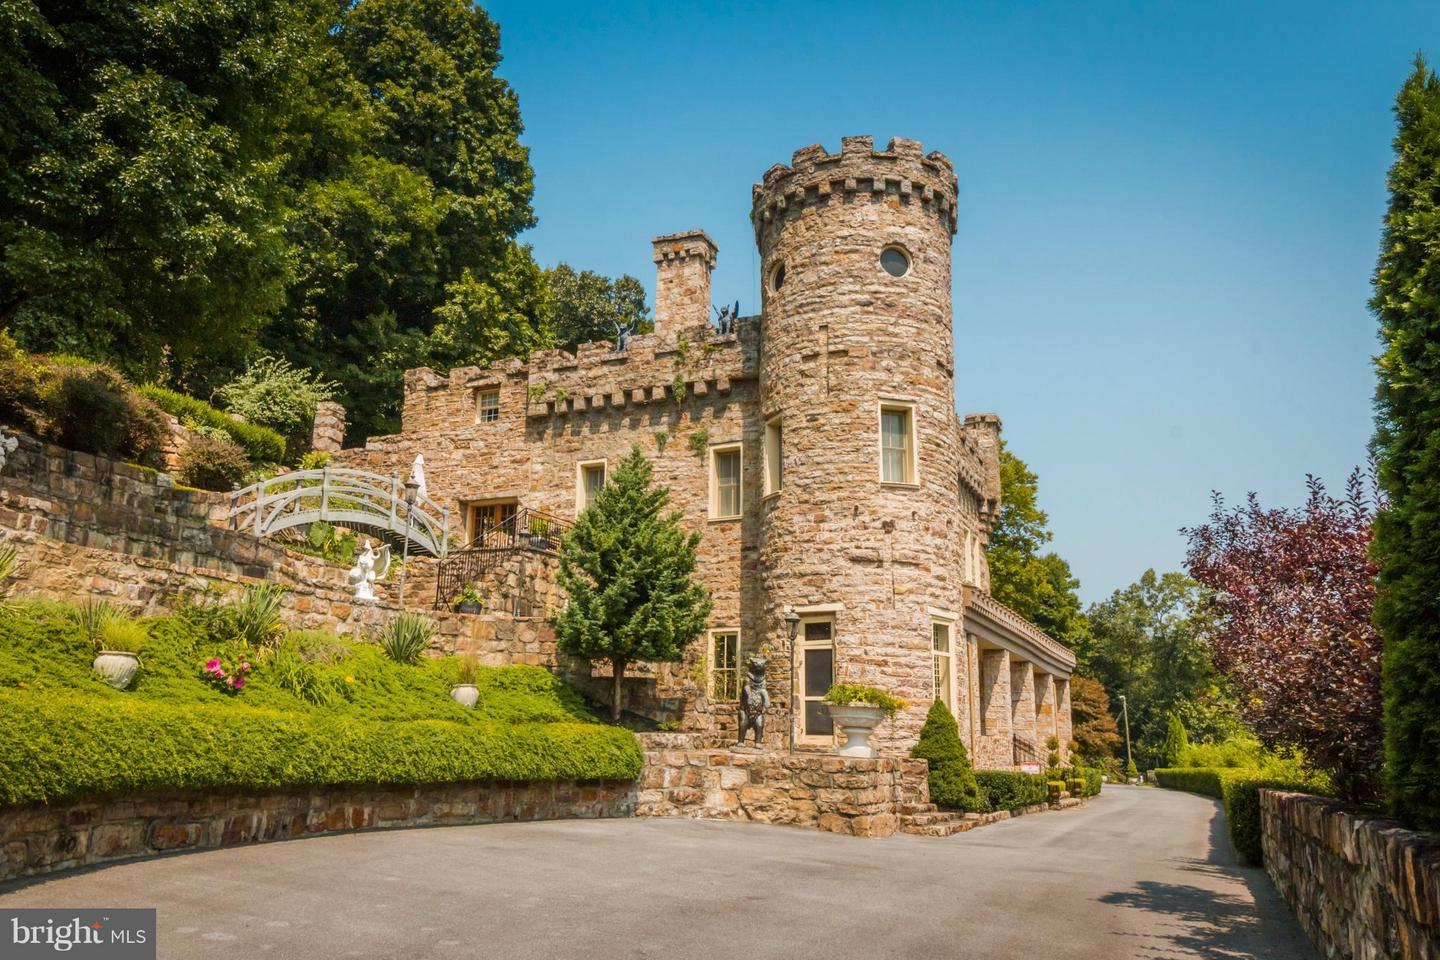 Berkeley investments berkeley springs wv castle psych 65 million years off quotes forex